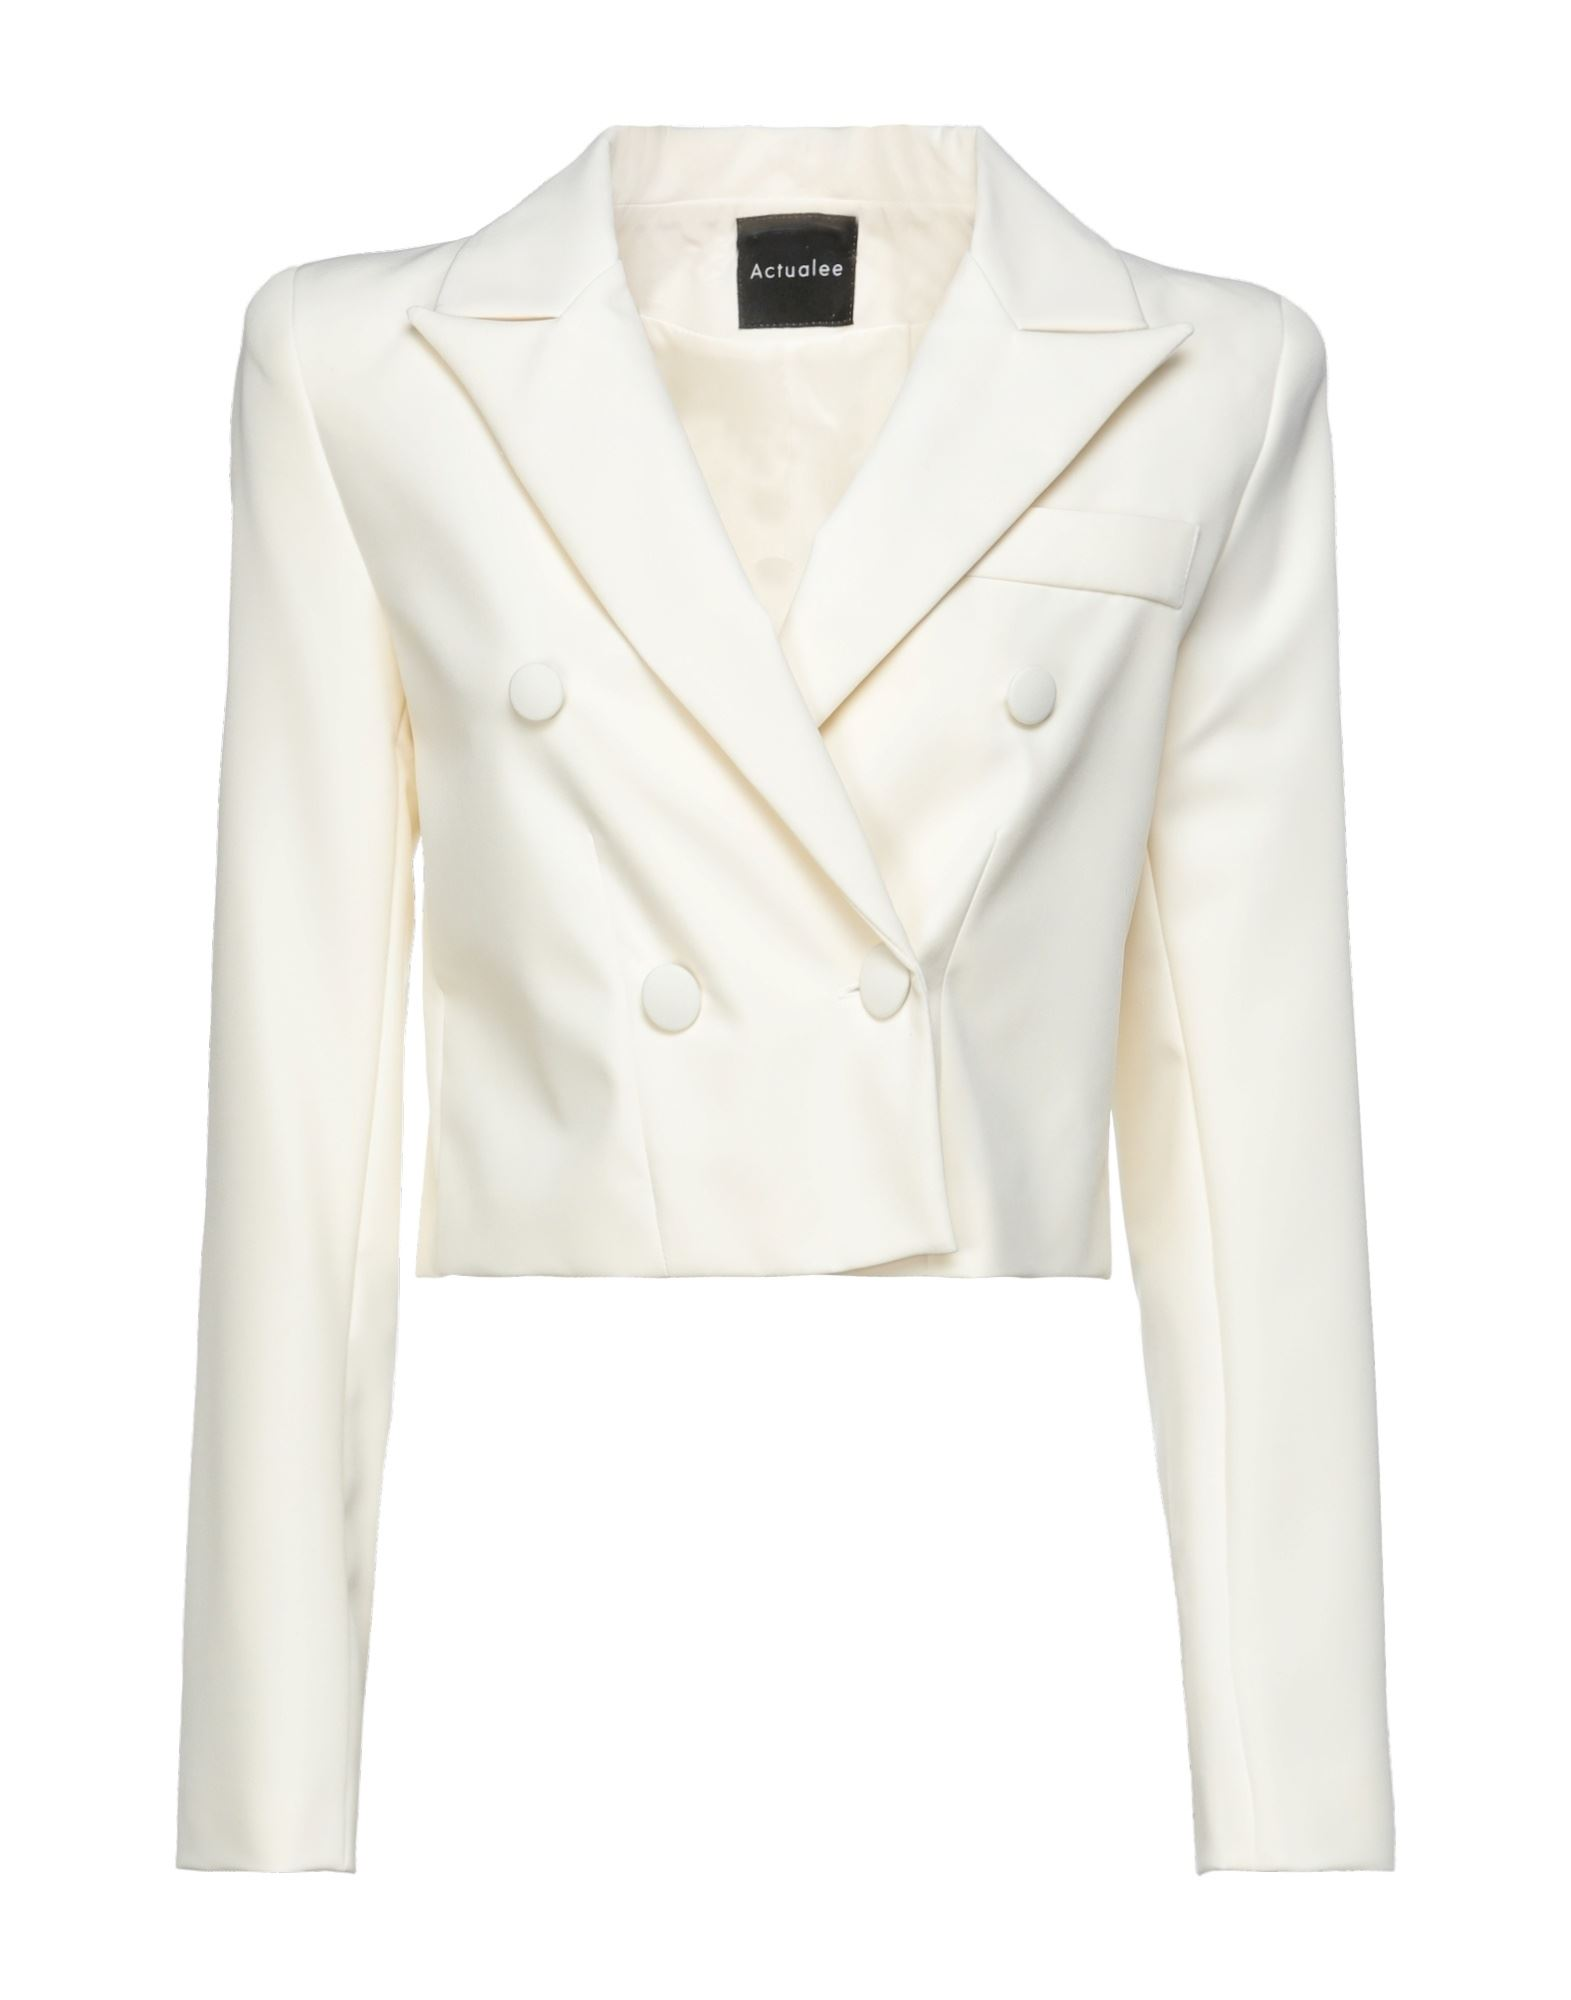 Actualee Suit Jackets In Ivory